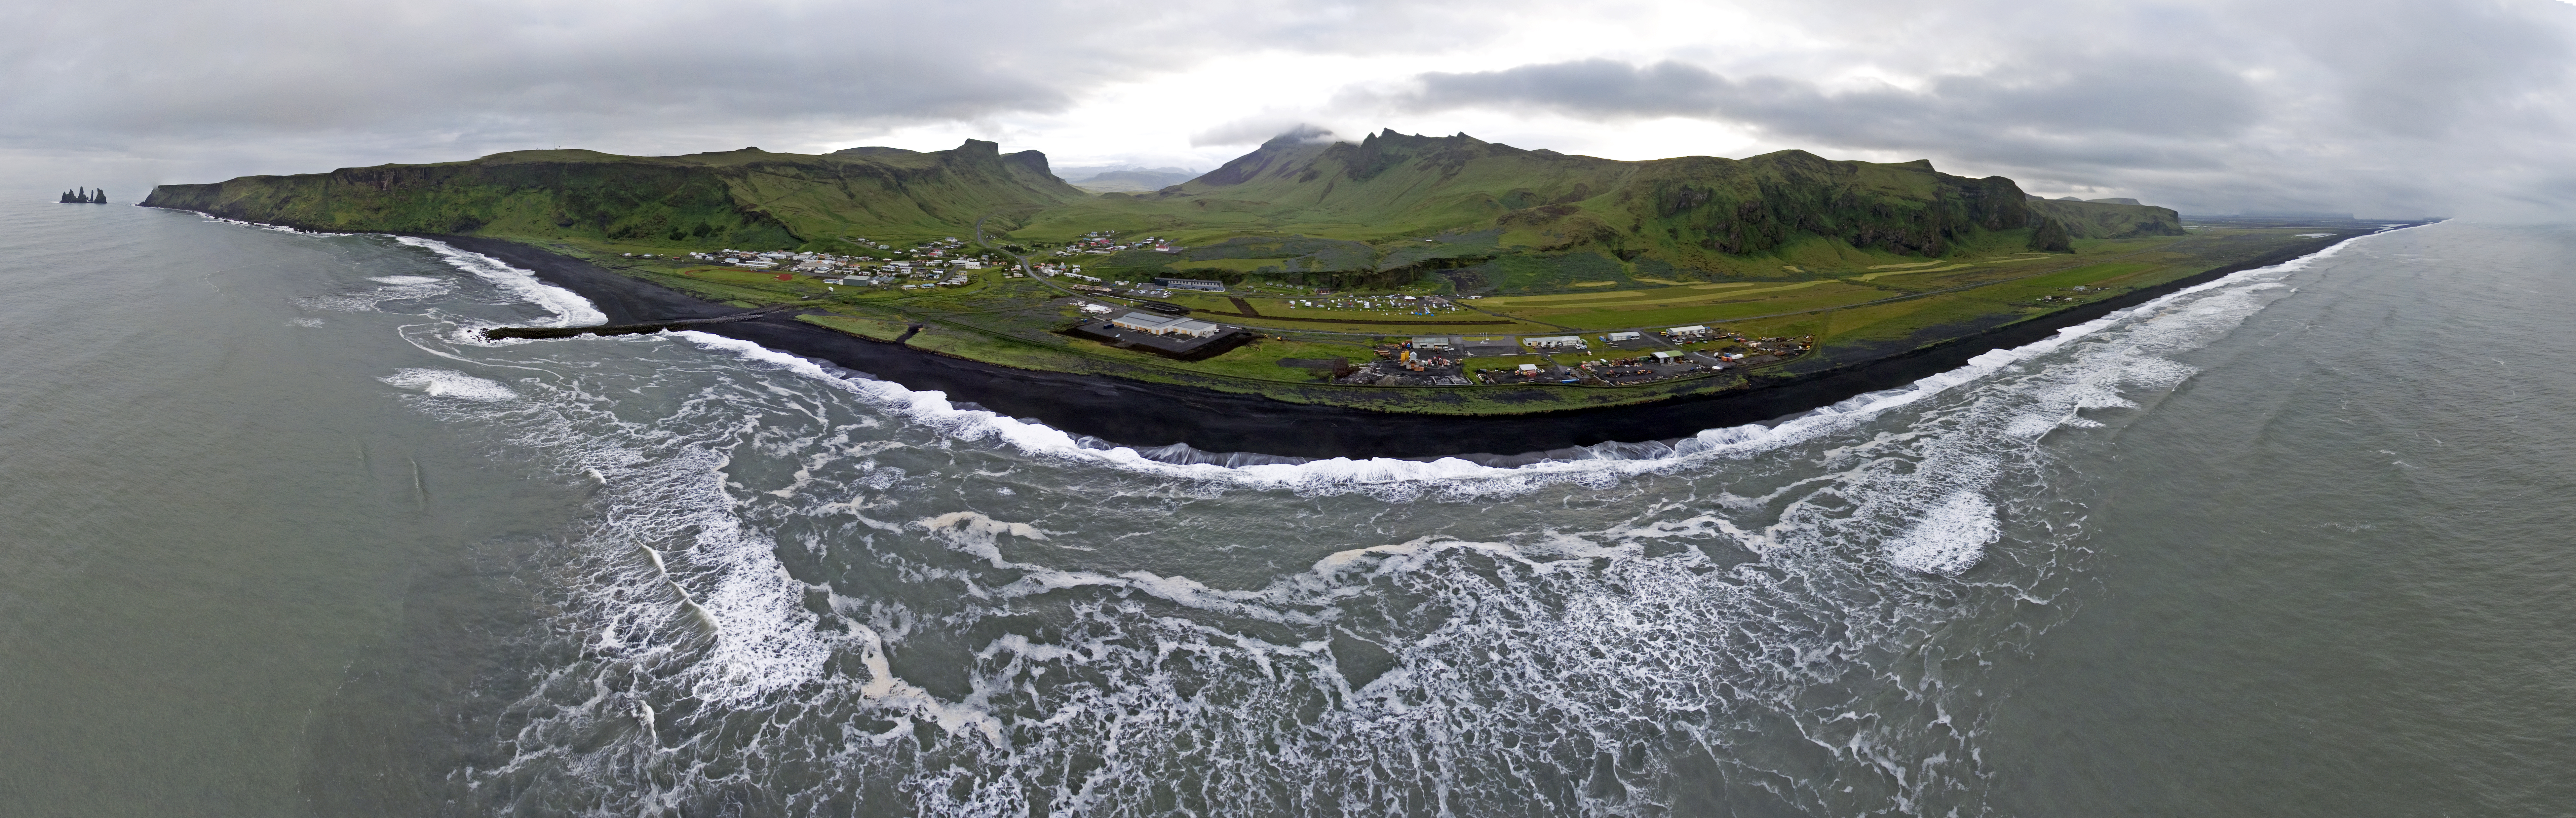 Vík í Mýrdal Aerial Panorama from out at sea. Photo taken on June 16, 2017.